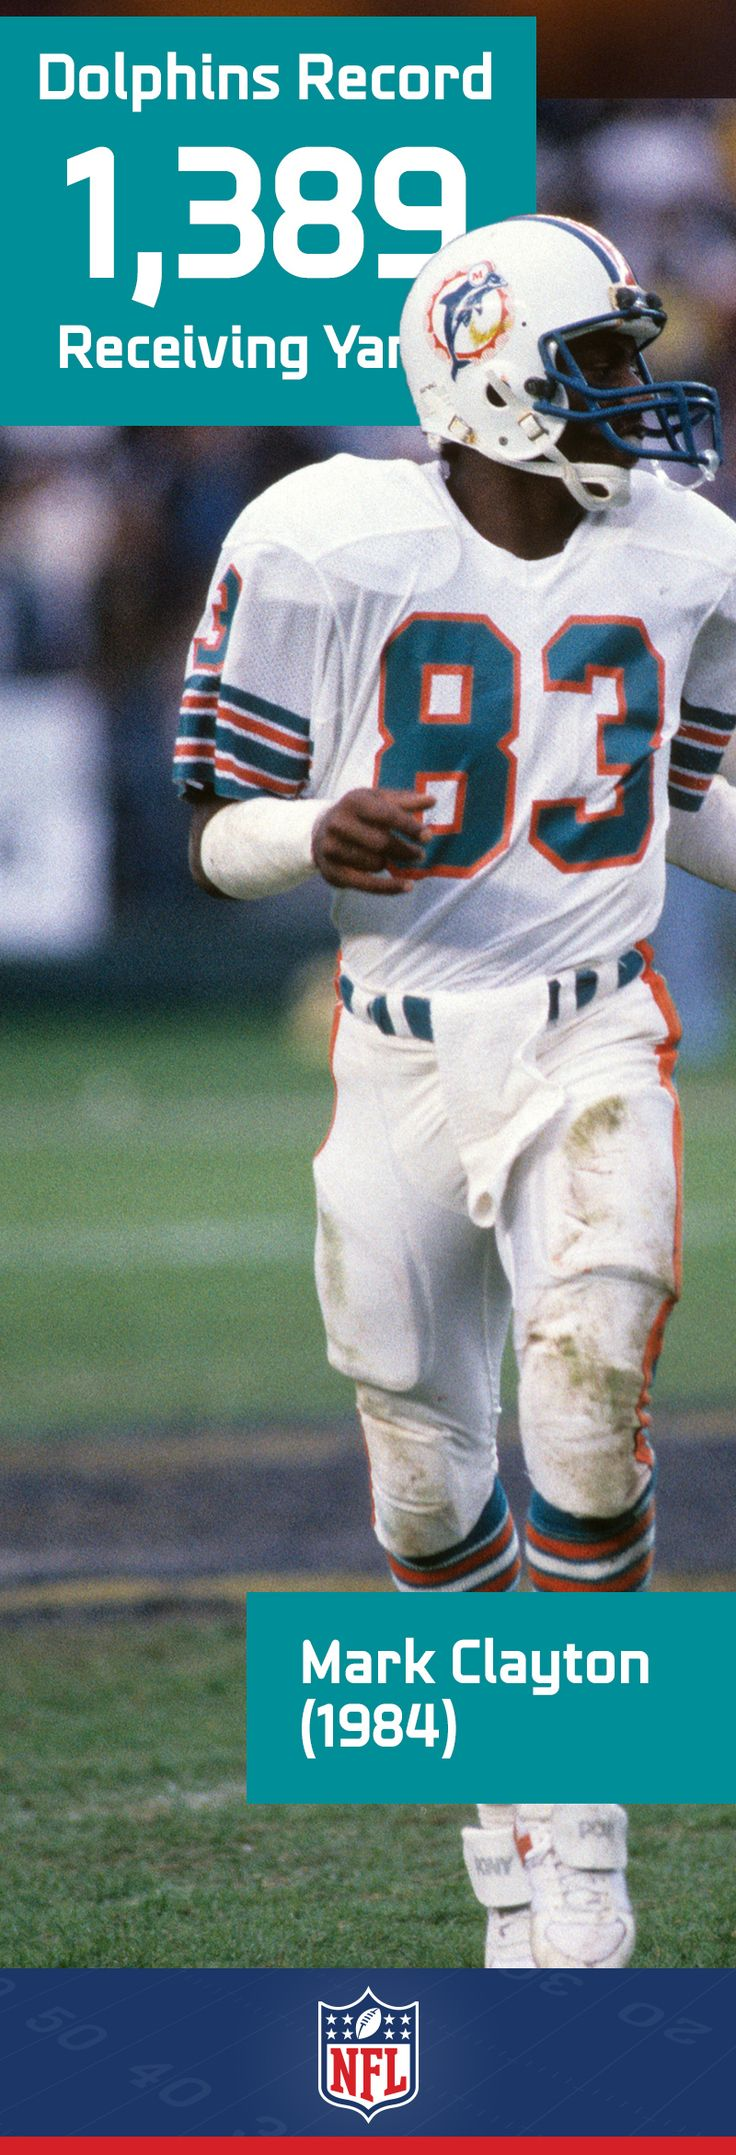 Flashback to 1984 when Dan Marino's favorite WR, Mark Clayton, set the Miami Dolphins receiving yards record.